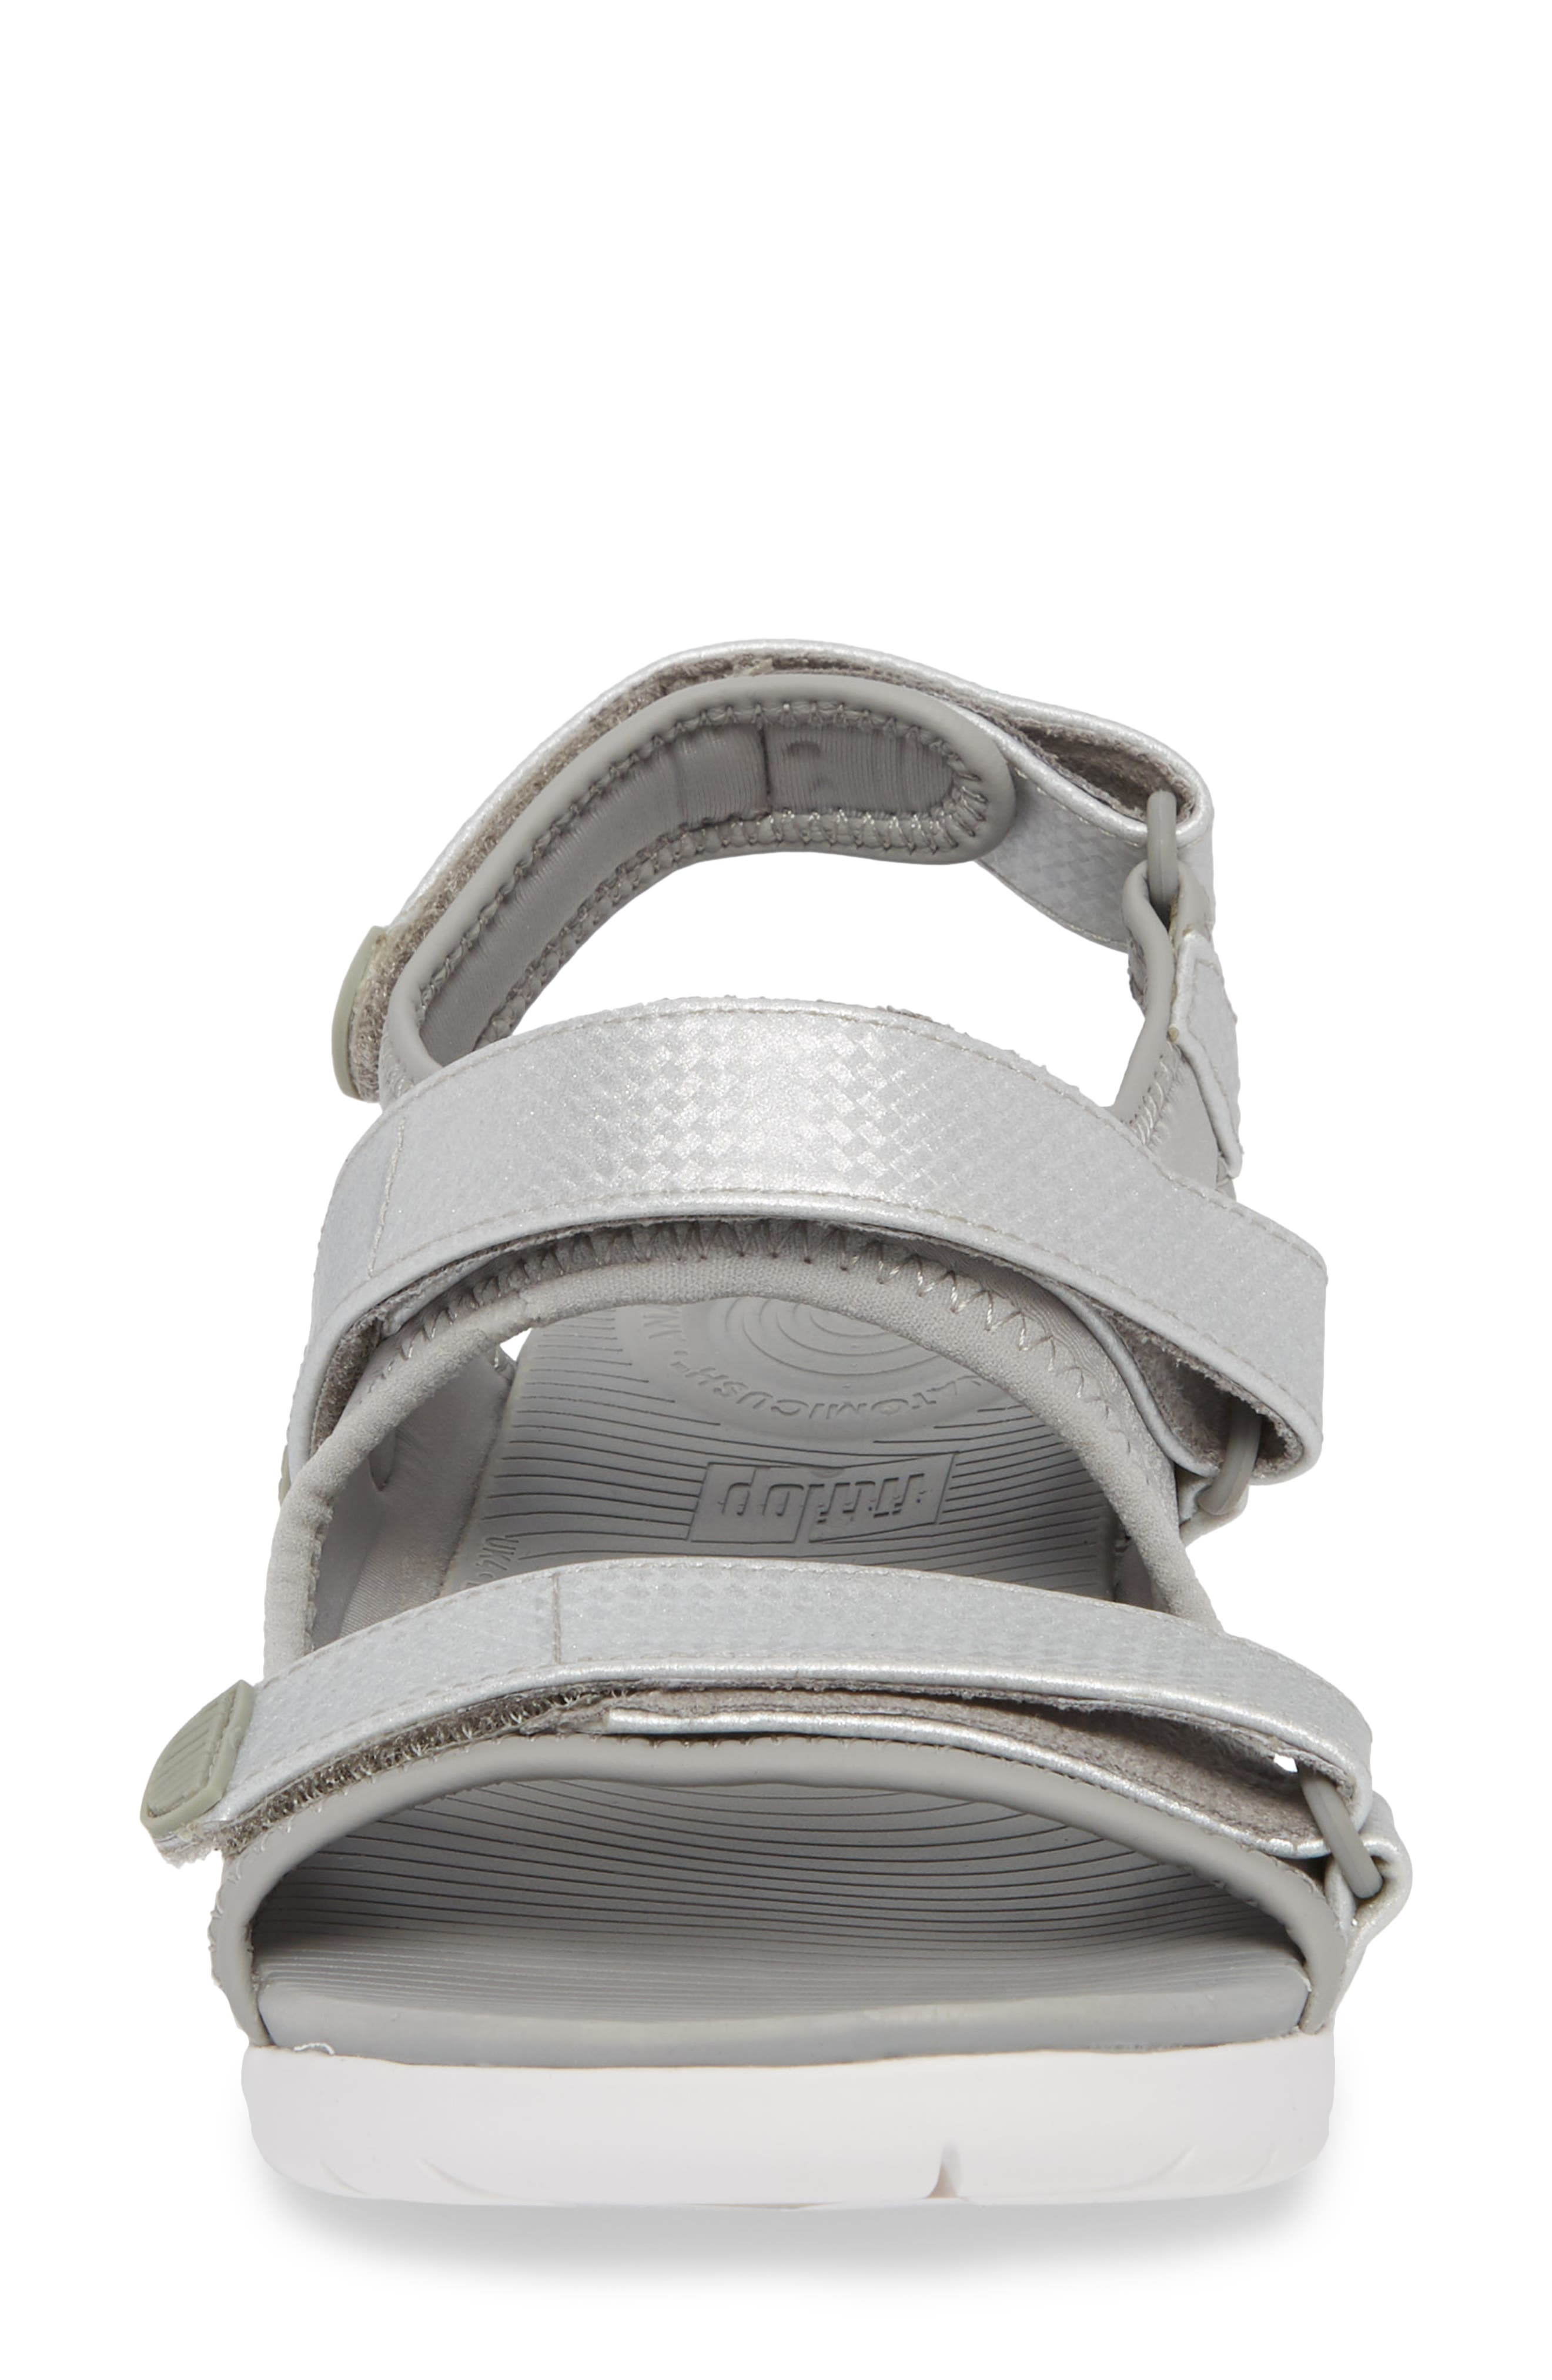 FitfFlop Neoflex<sup>™</sup> Back Strap Sandal,                             Alternate thumbnail 4, color,                             SOFT GREY/ SILVER LEATHER